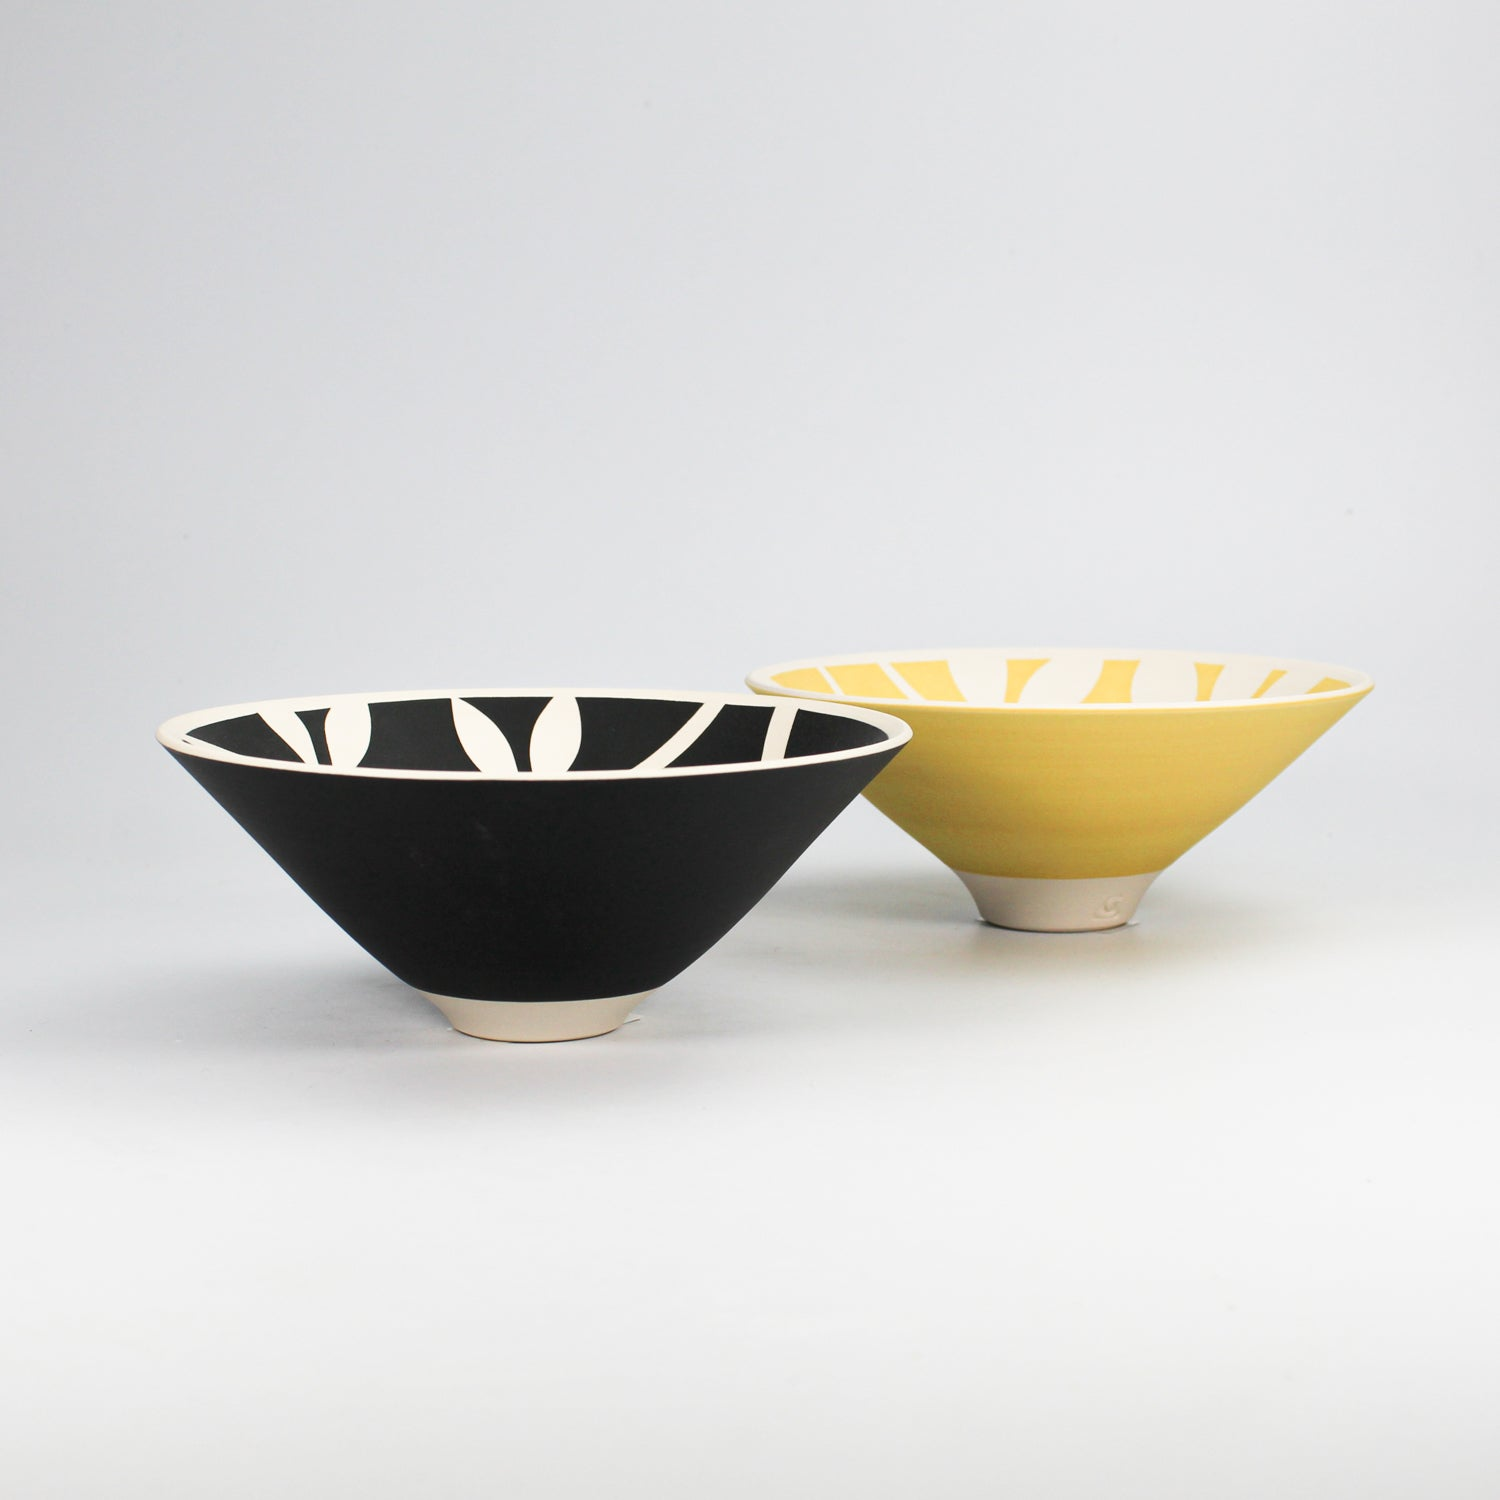 Side view of two porcelain bowls. One bowl is yellow and the other is black